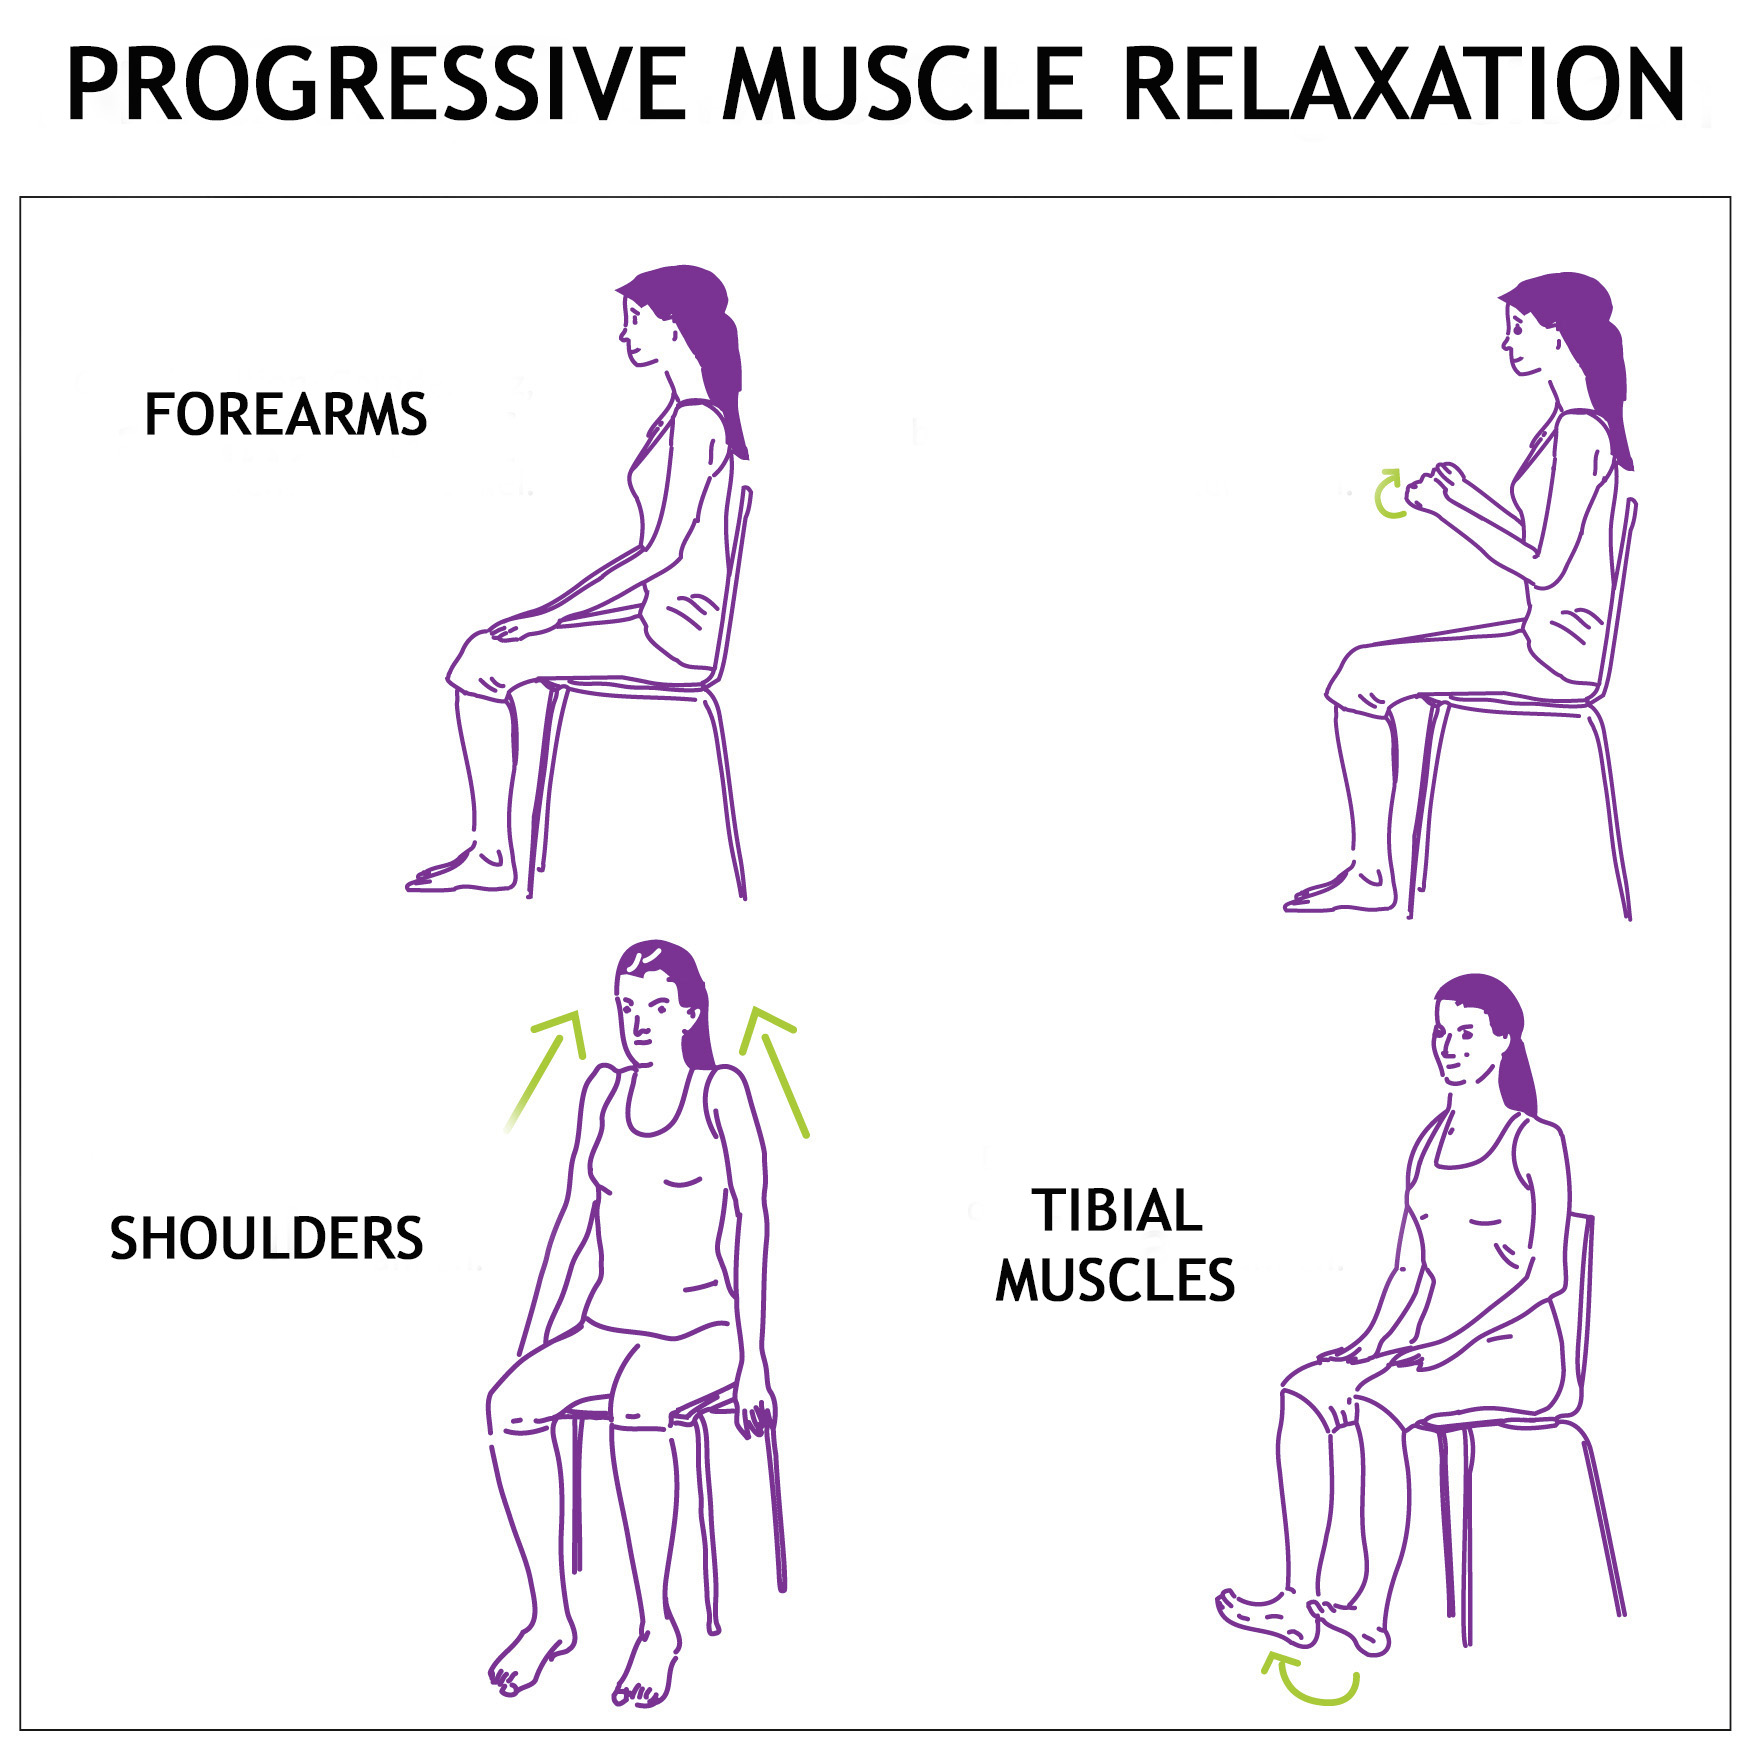 1893257 further Positioning Of Skull in addition Artis Zee additionally Urdu How Can I Do A Safe Abortion Myself With Misoprostol moreover Jacobsons Progressive Muscle Relaxation. on medical positions of the body